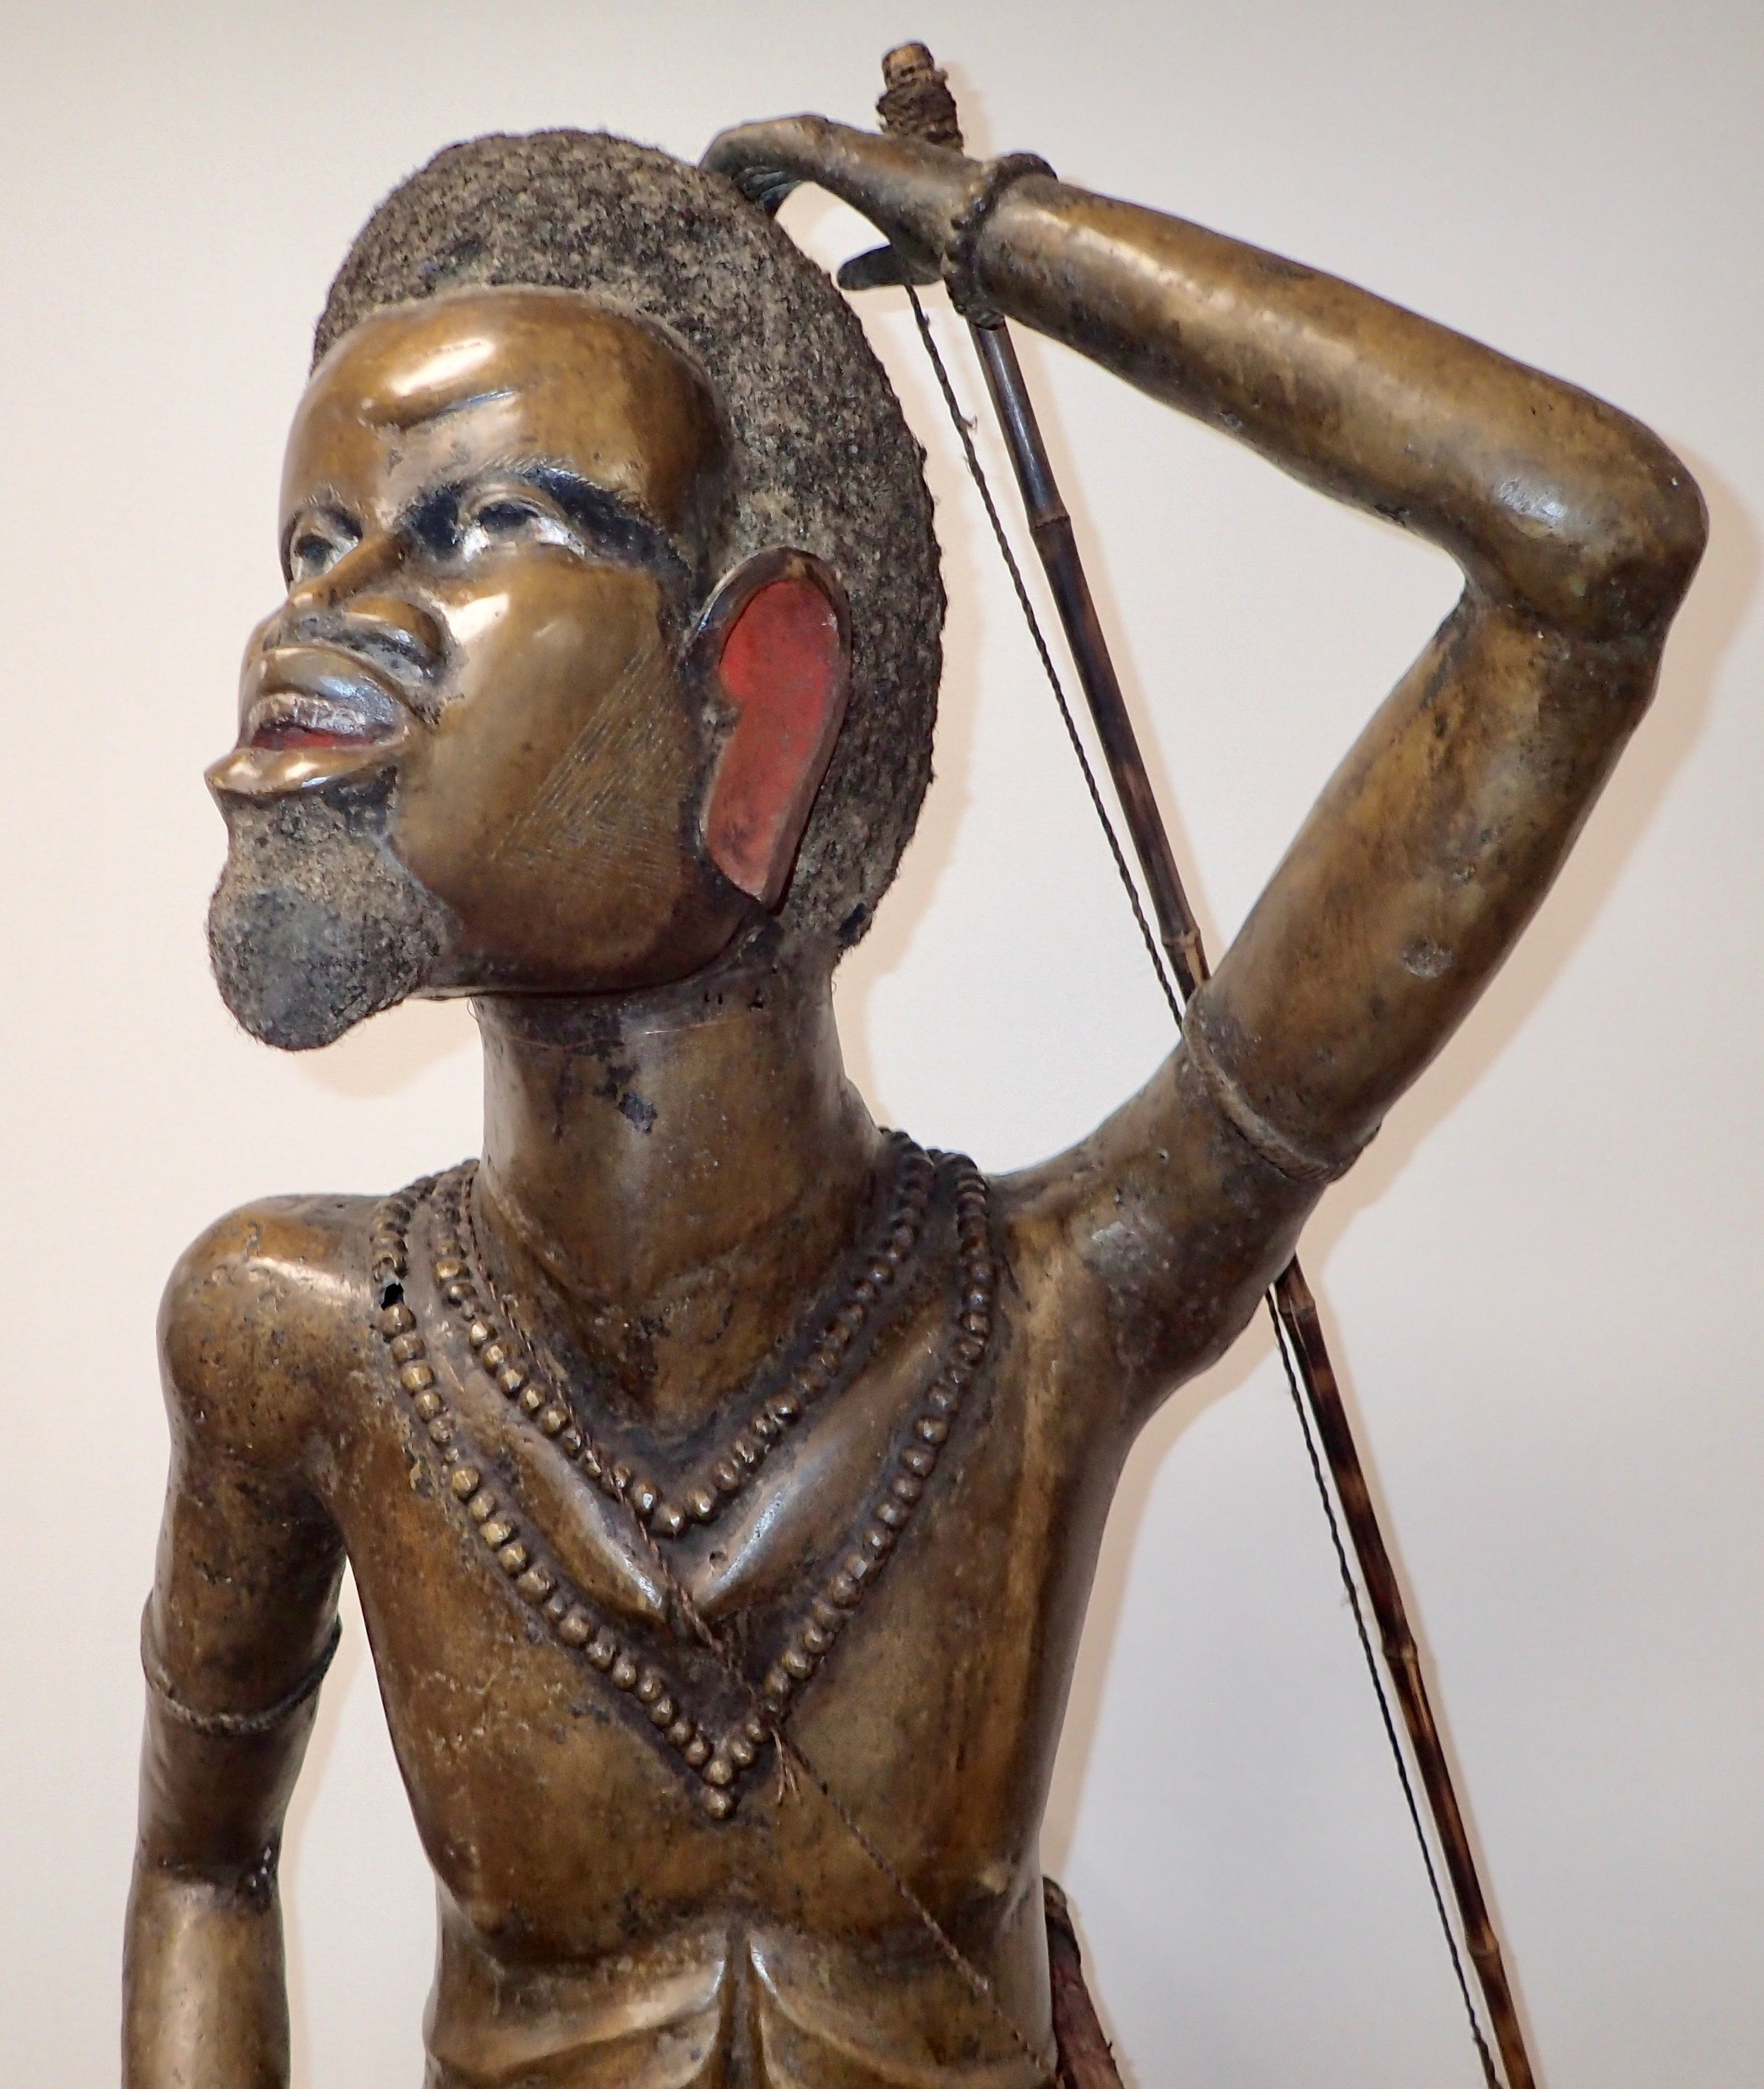 The bronze sculpture of this Pygmy is made with actual hair.